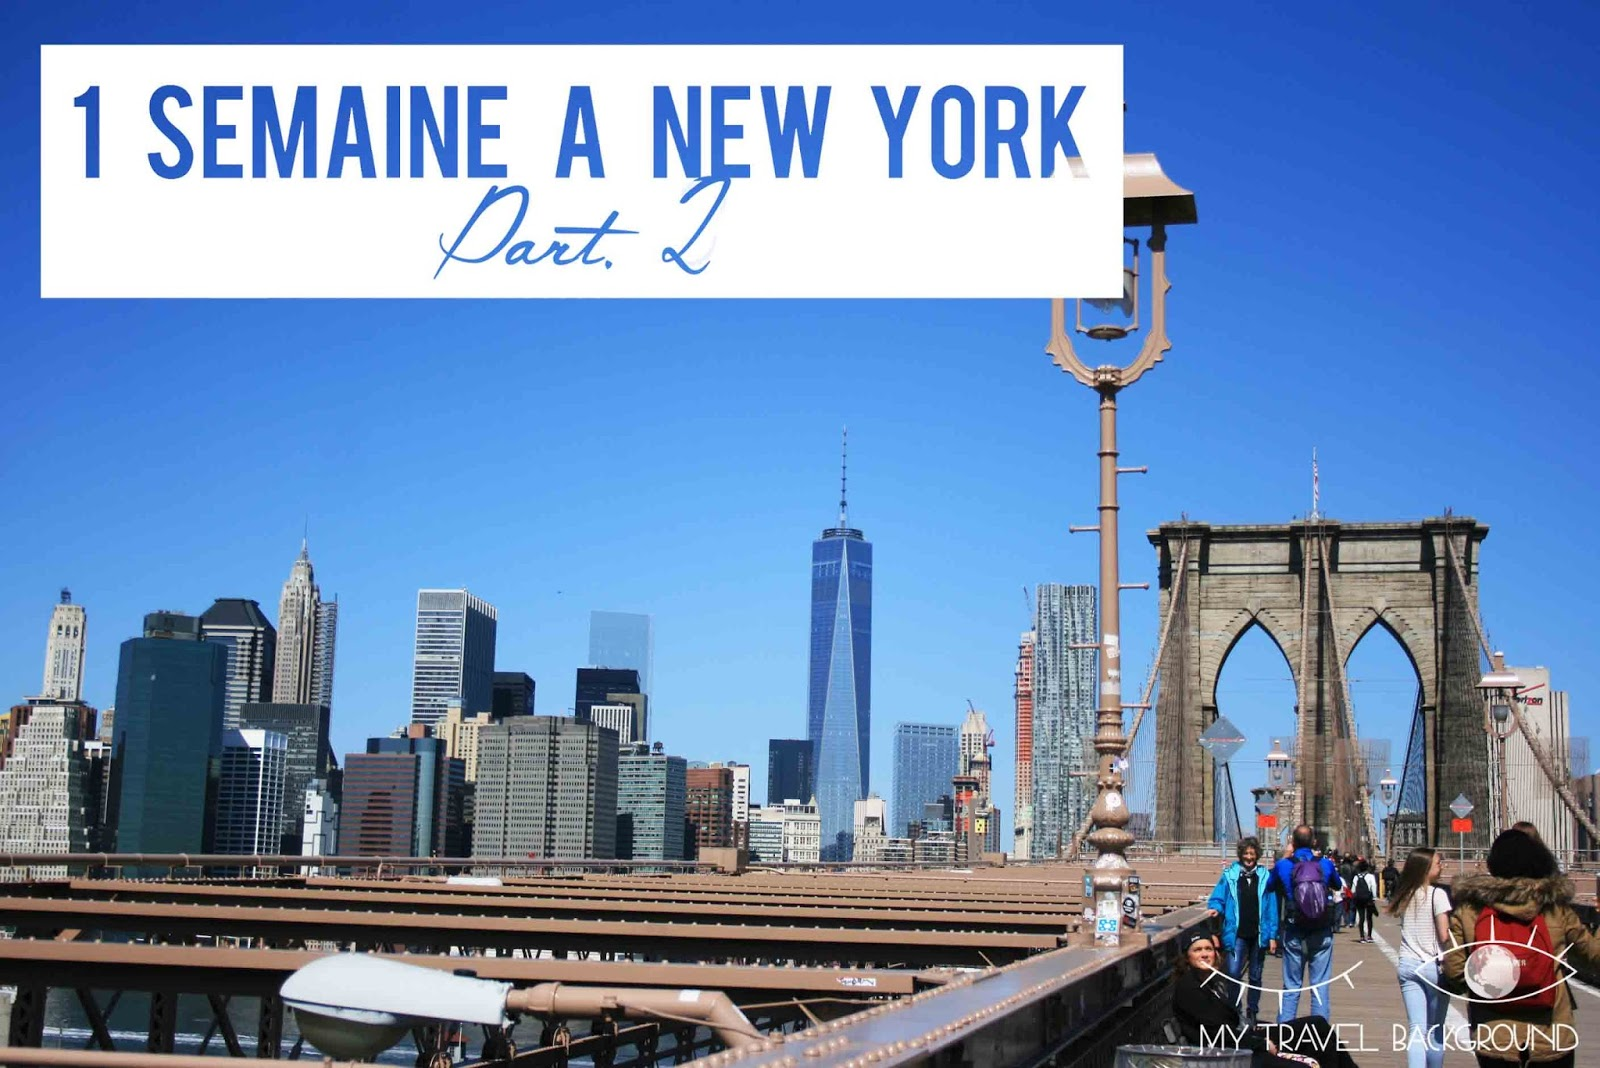 My Travel Background : Une semaine à New York : itinéraire